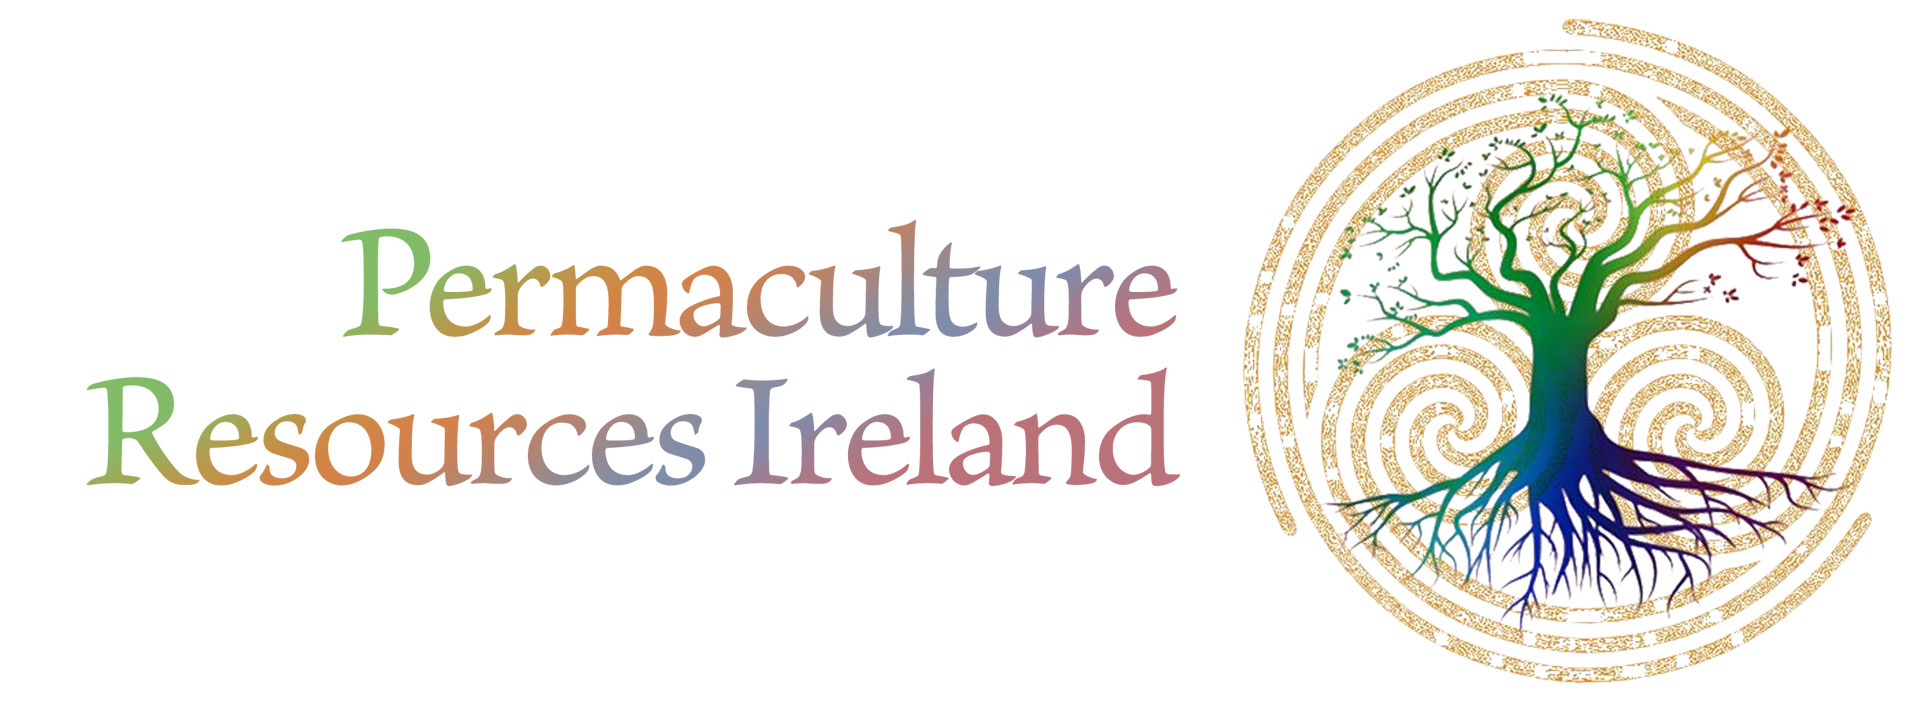 Permaculture Resources Ireland